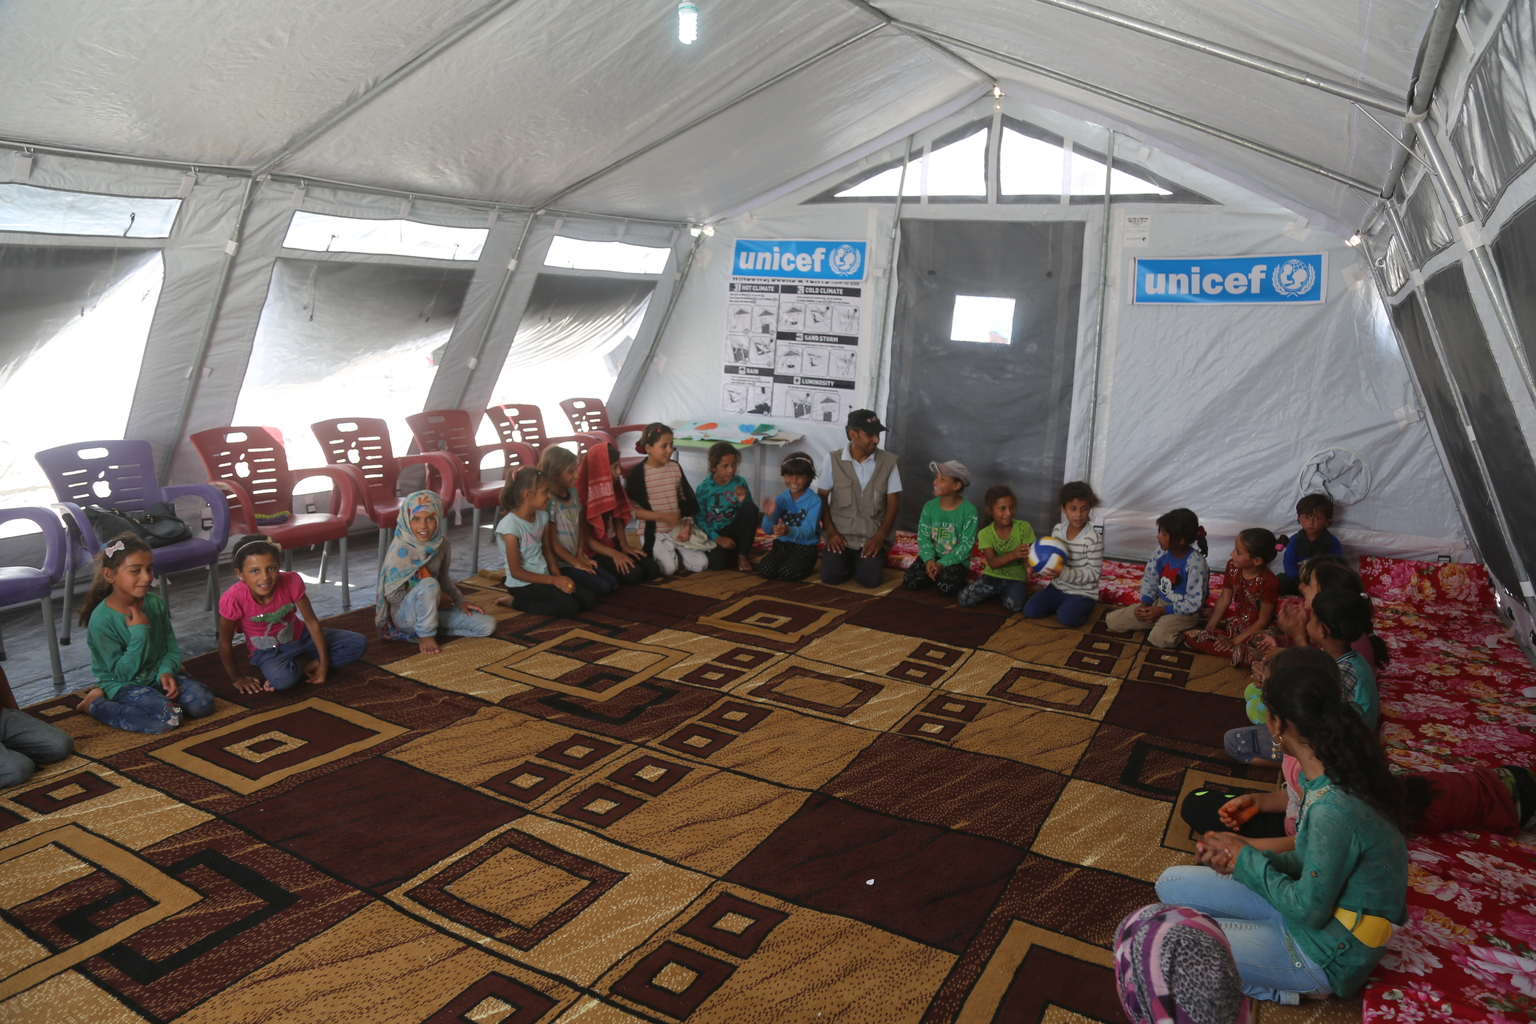 On 4 July 2017 in Ain Issa camp in the Syrian Arab Republic, displaced children from Raqqa attend a UNICEF psychosocial support programme. More than 6,600 people live in harsh desert conditions, as violence continues in the area. Since November 2016, unrelenting violence in the north eastern governorate of Raqqa has displaced over 200,000 people, almost half of whom are children. Intensified attacks have destroyed infrastructure and shattered civilian lives. Families are seeking safety in temporary shelters, with little access to basic services. In Ain Issa camp, UNICEF has set up six child-friendly spaces for learning and playing and is providing psychological support to more than 400 children to help them cope with the traumas they have faced and to regain a sense of structure and normality. In response to the needs of vulnerable families in the area, UNICEF is trucking in water daily to internally displaced people in camps in Raqqa and Hassakeh, including Mabrouka, Al-Hol and Ain Issa. UNICEF has installed latrines, showers and water storage tanks in the camps and is distributing family hygiene kits to protect children against waterborne diseases. Mobile health clinics have been set up to provide primary health care, including vaccinations for children and their mothers. Nutritional supplements are distributed on a regular basis.